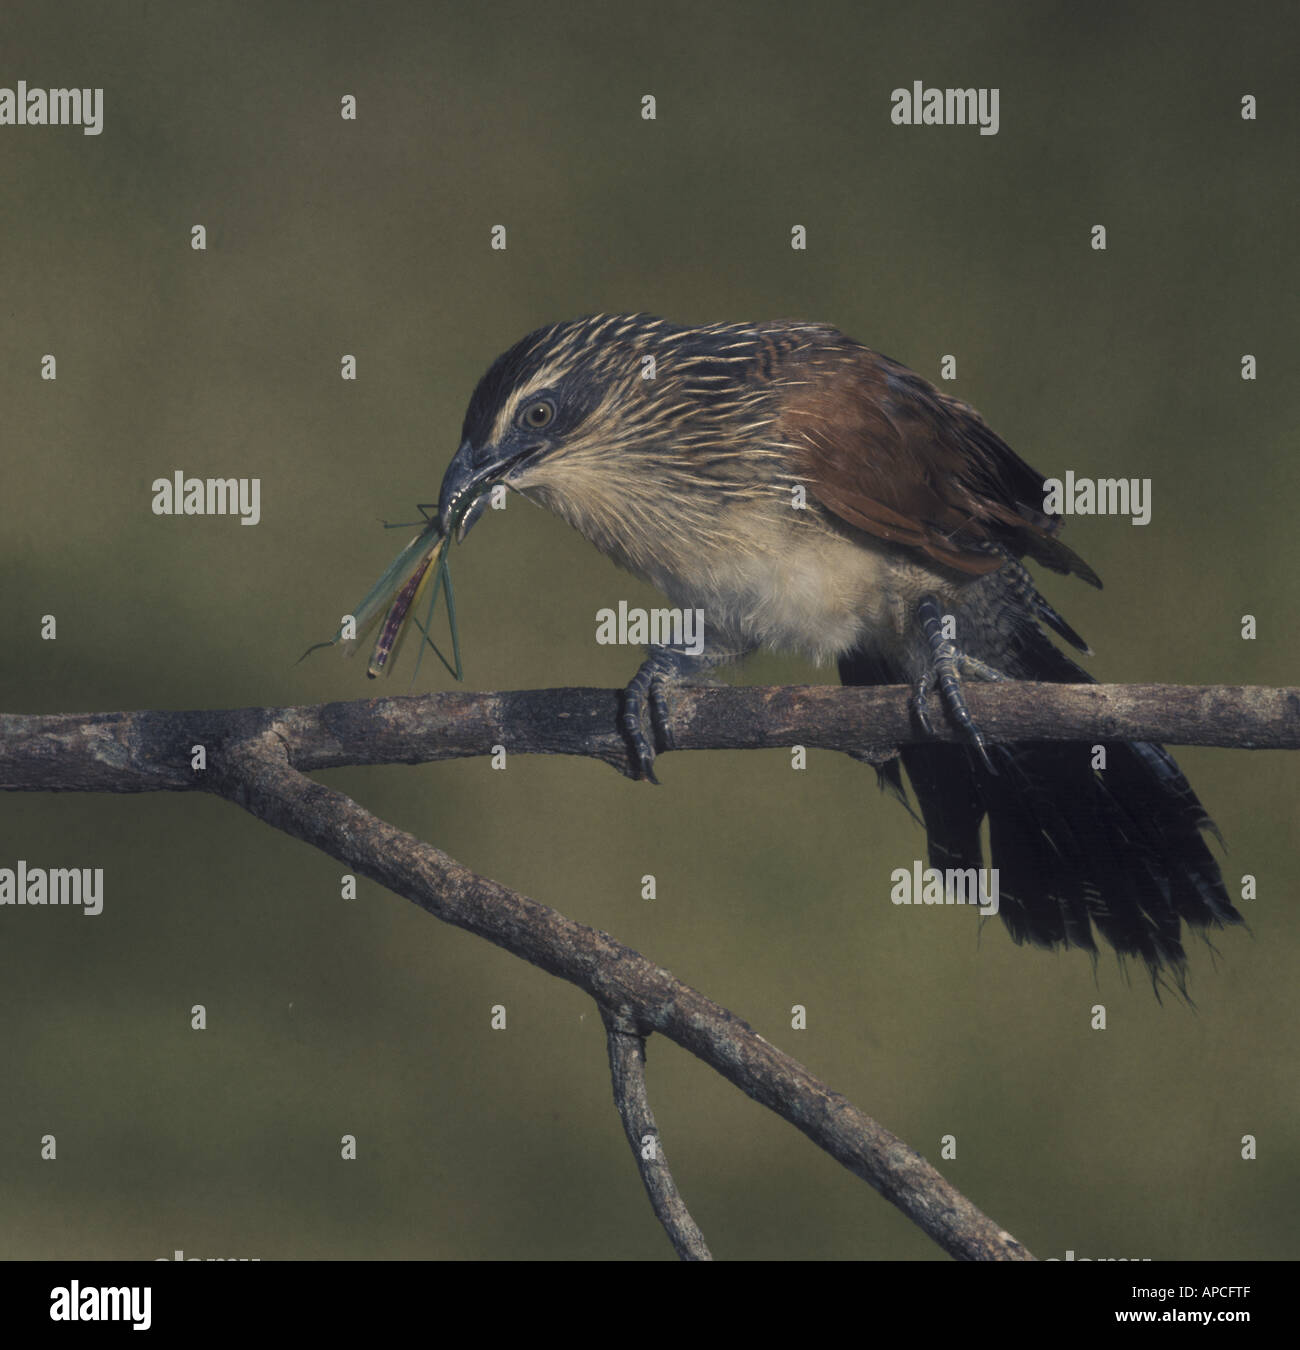 White browed coucal Centropus superciliosus immature bird - Stock Image